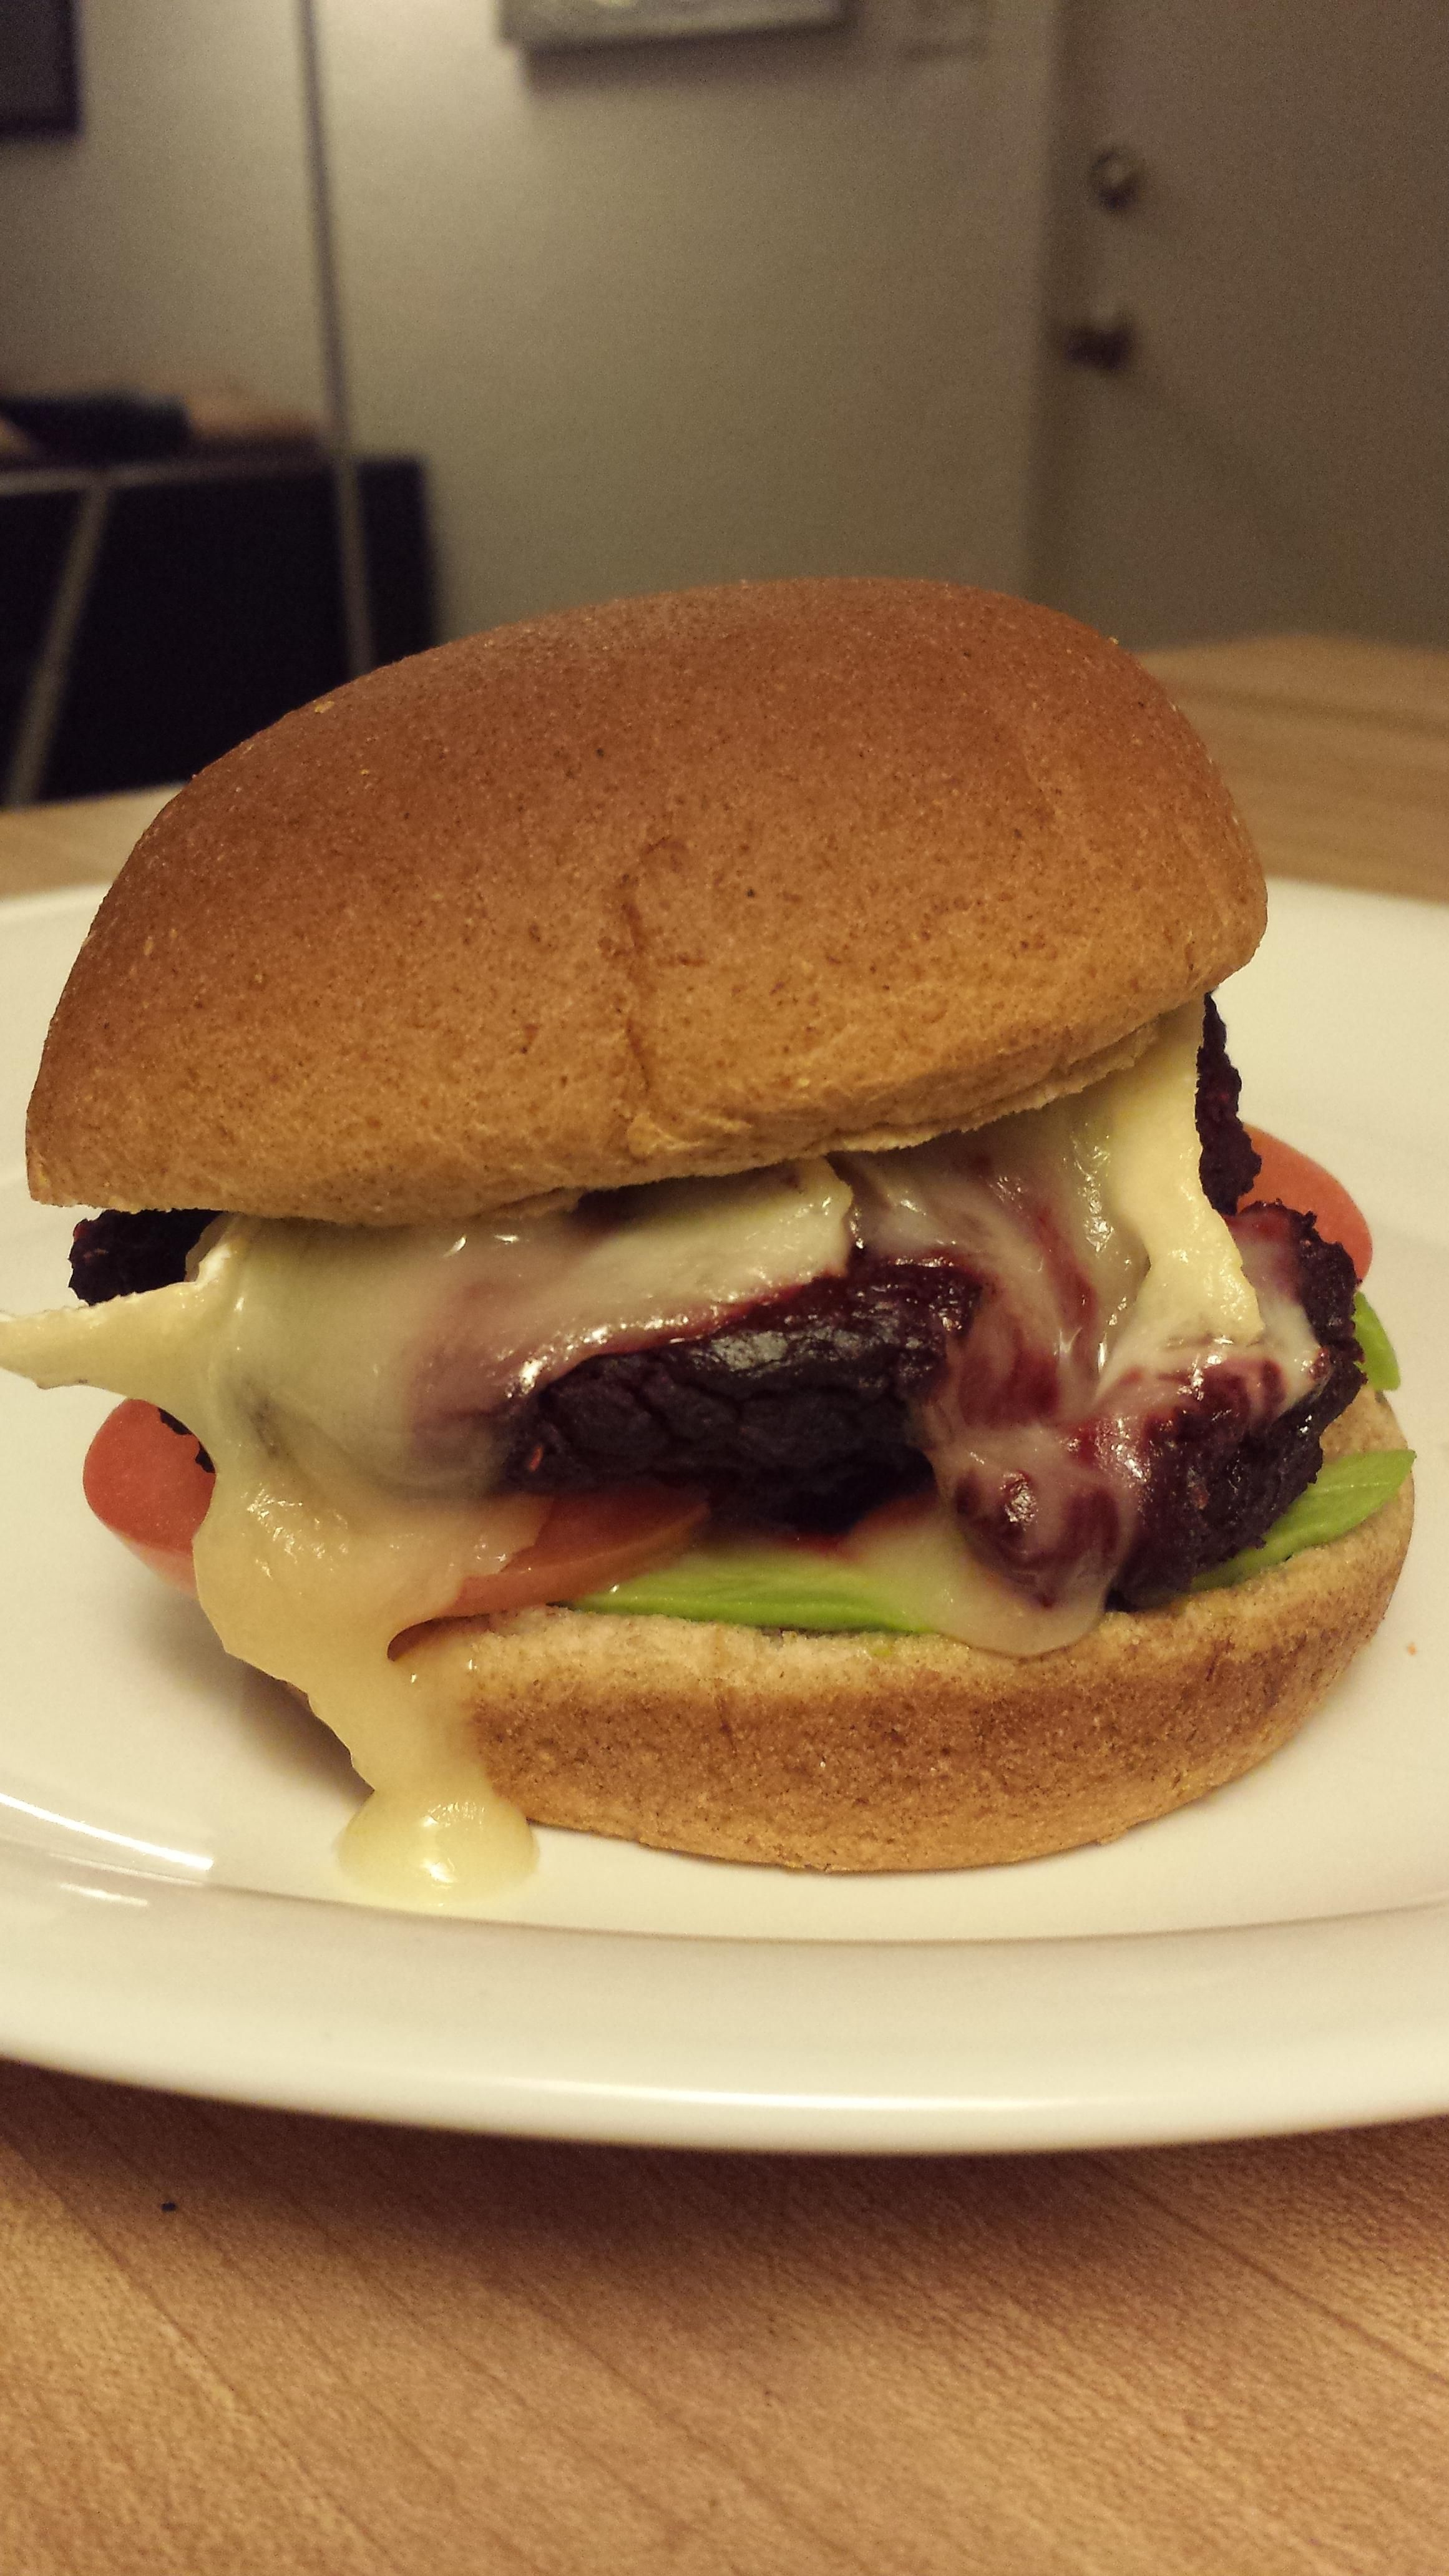 Beet Root Veggie Burger with Avocado Tomato and Melted Brie.